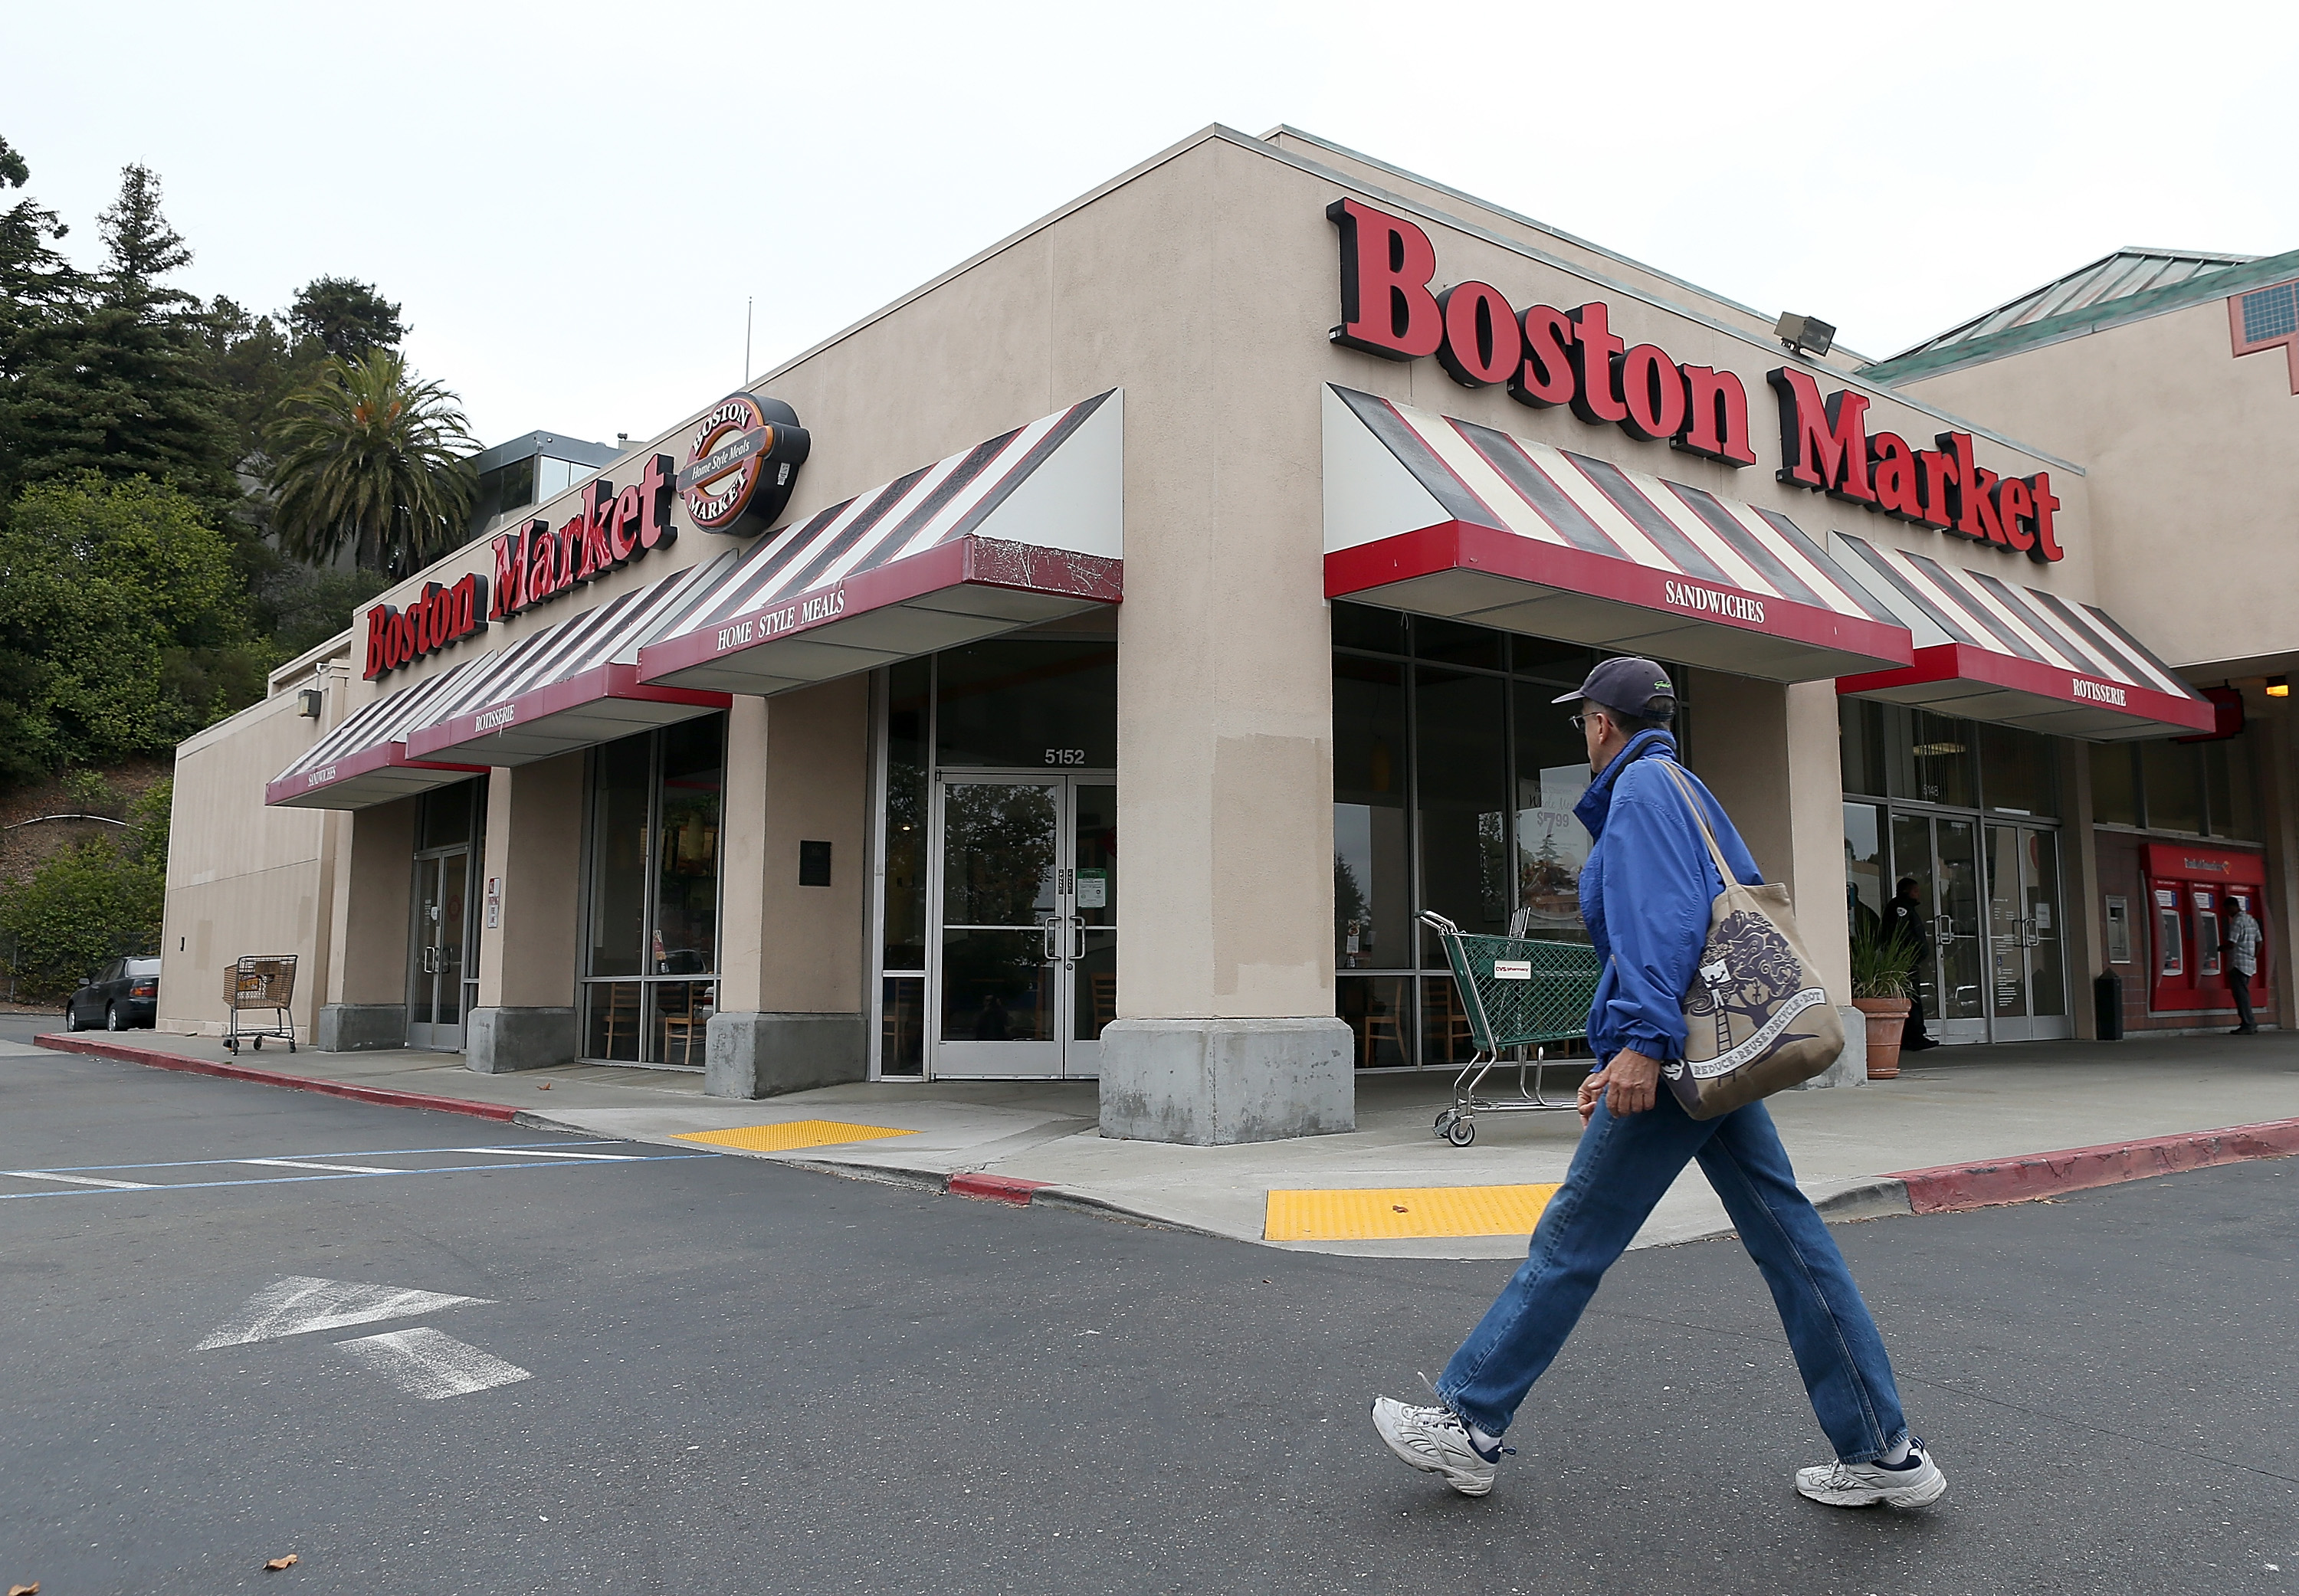 Boston Market To Remove Salt Shakers, Lower Sodium Levels In Food